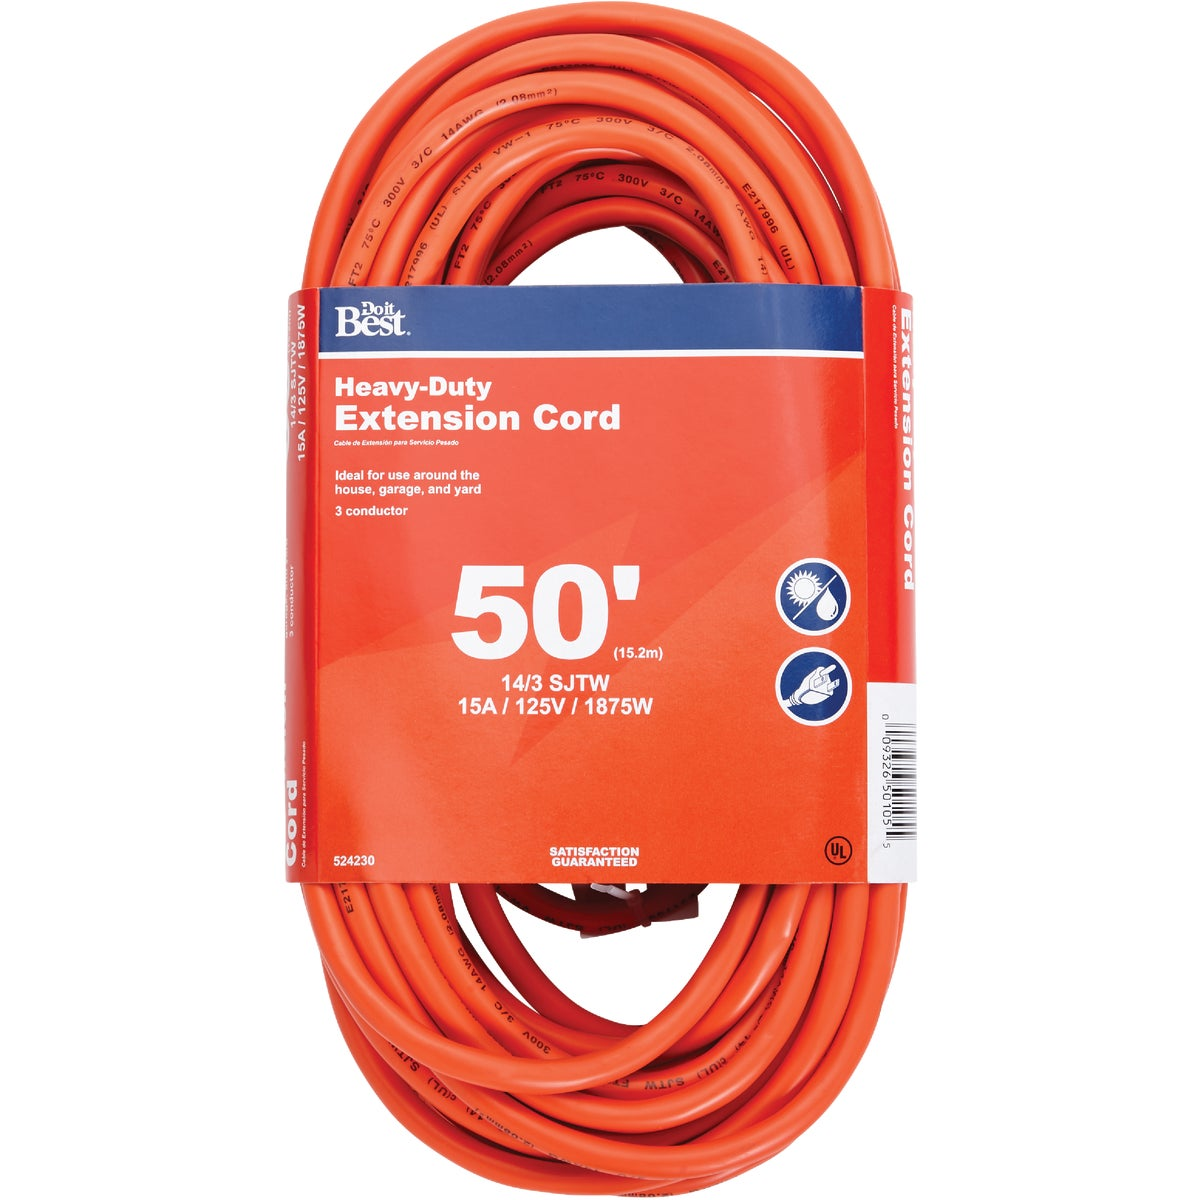 50' 14/3 OUTDOOR CORD - 550626 by Coleman Cable Import